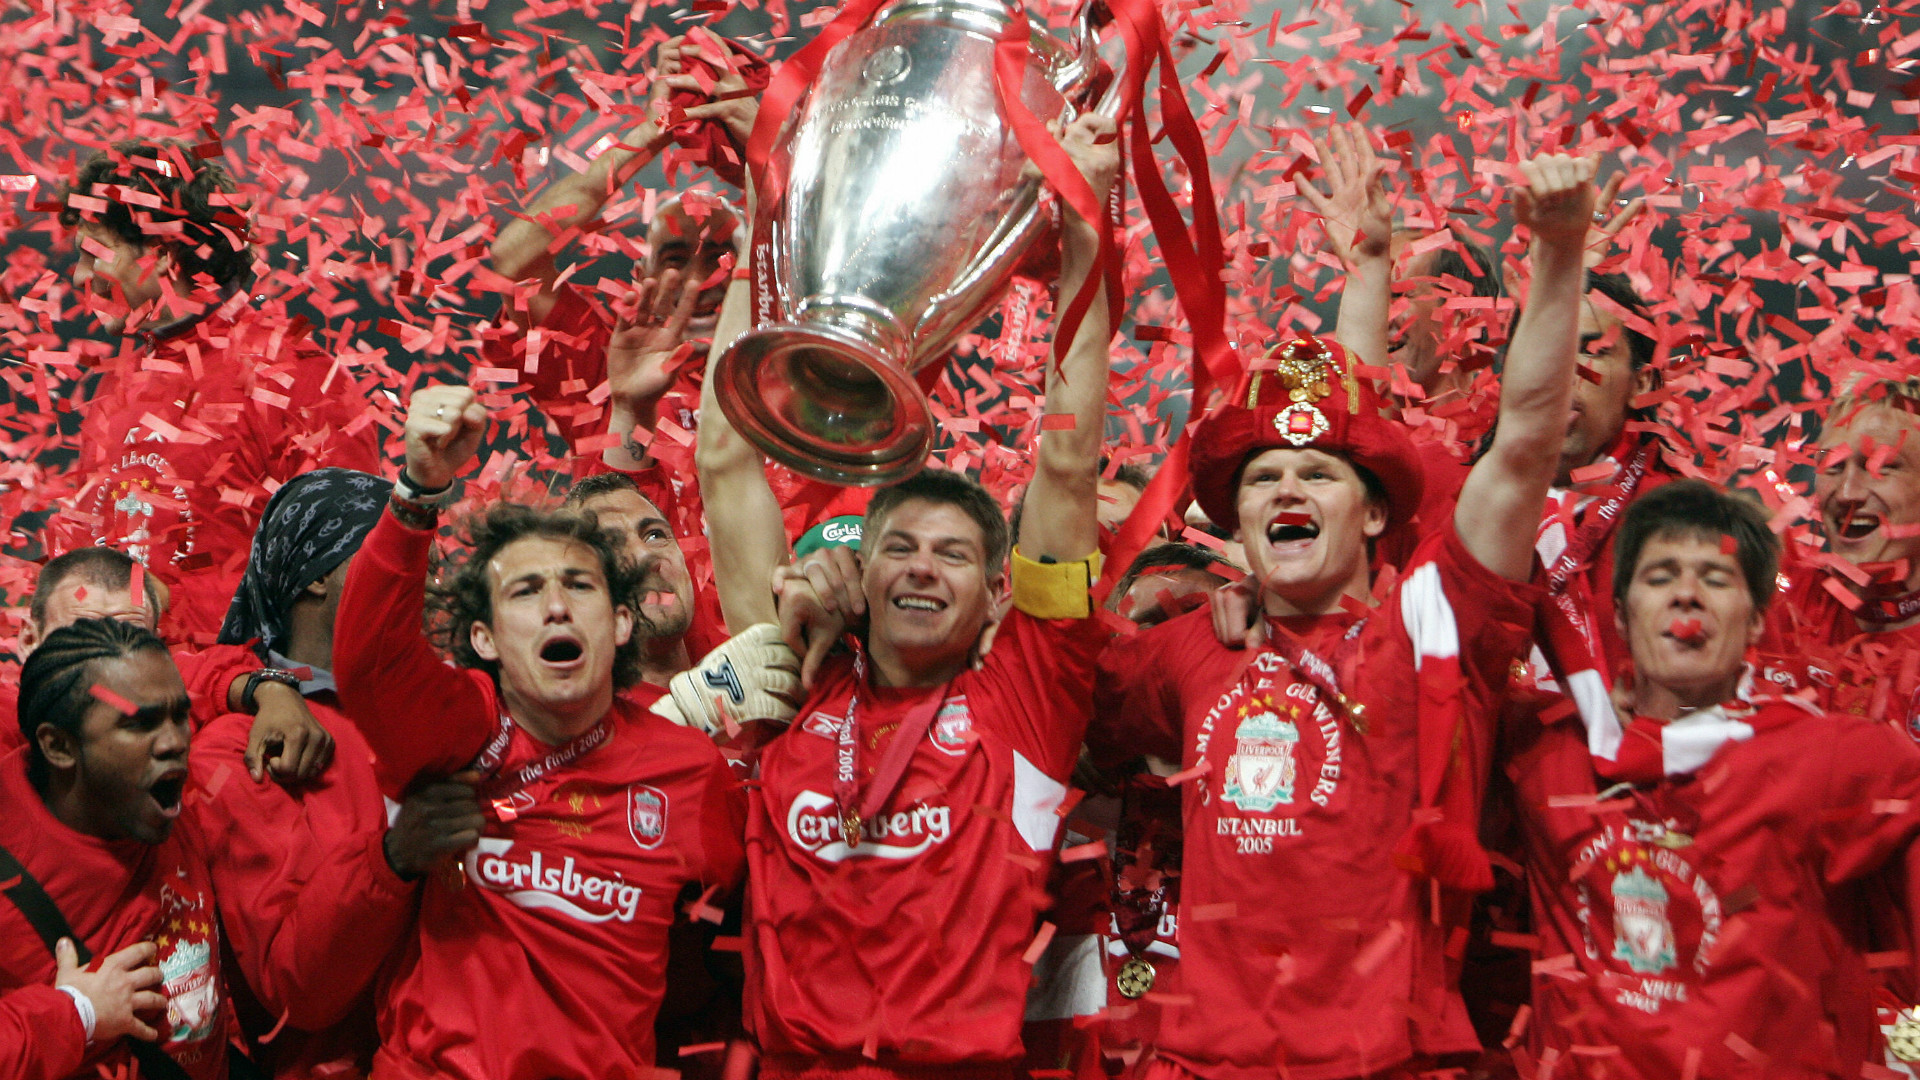 Liverpool Champions League final 2005